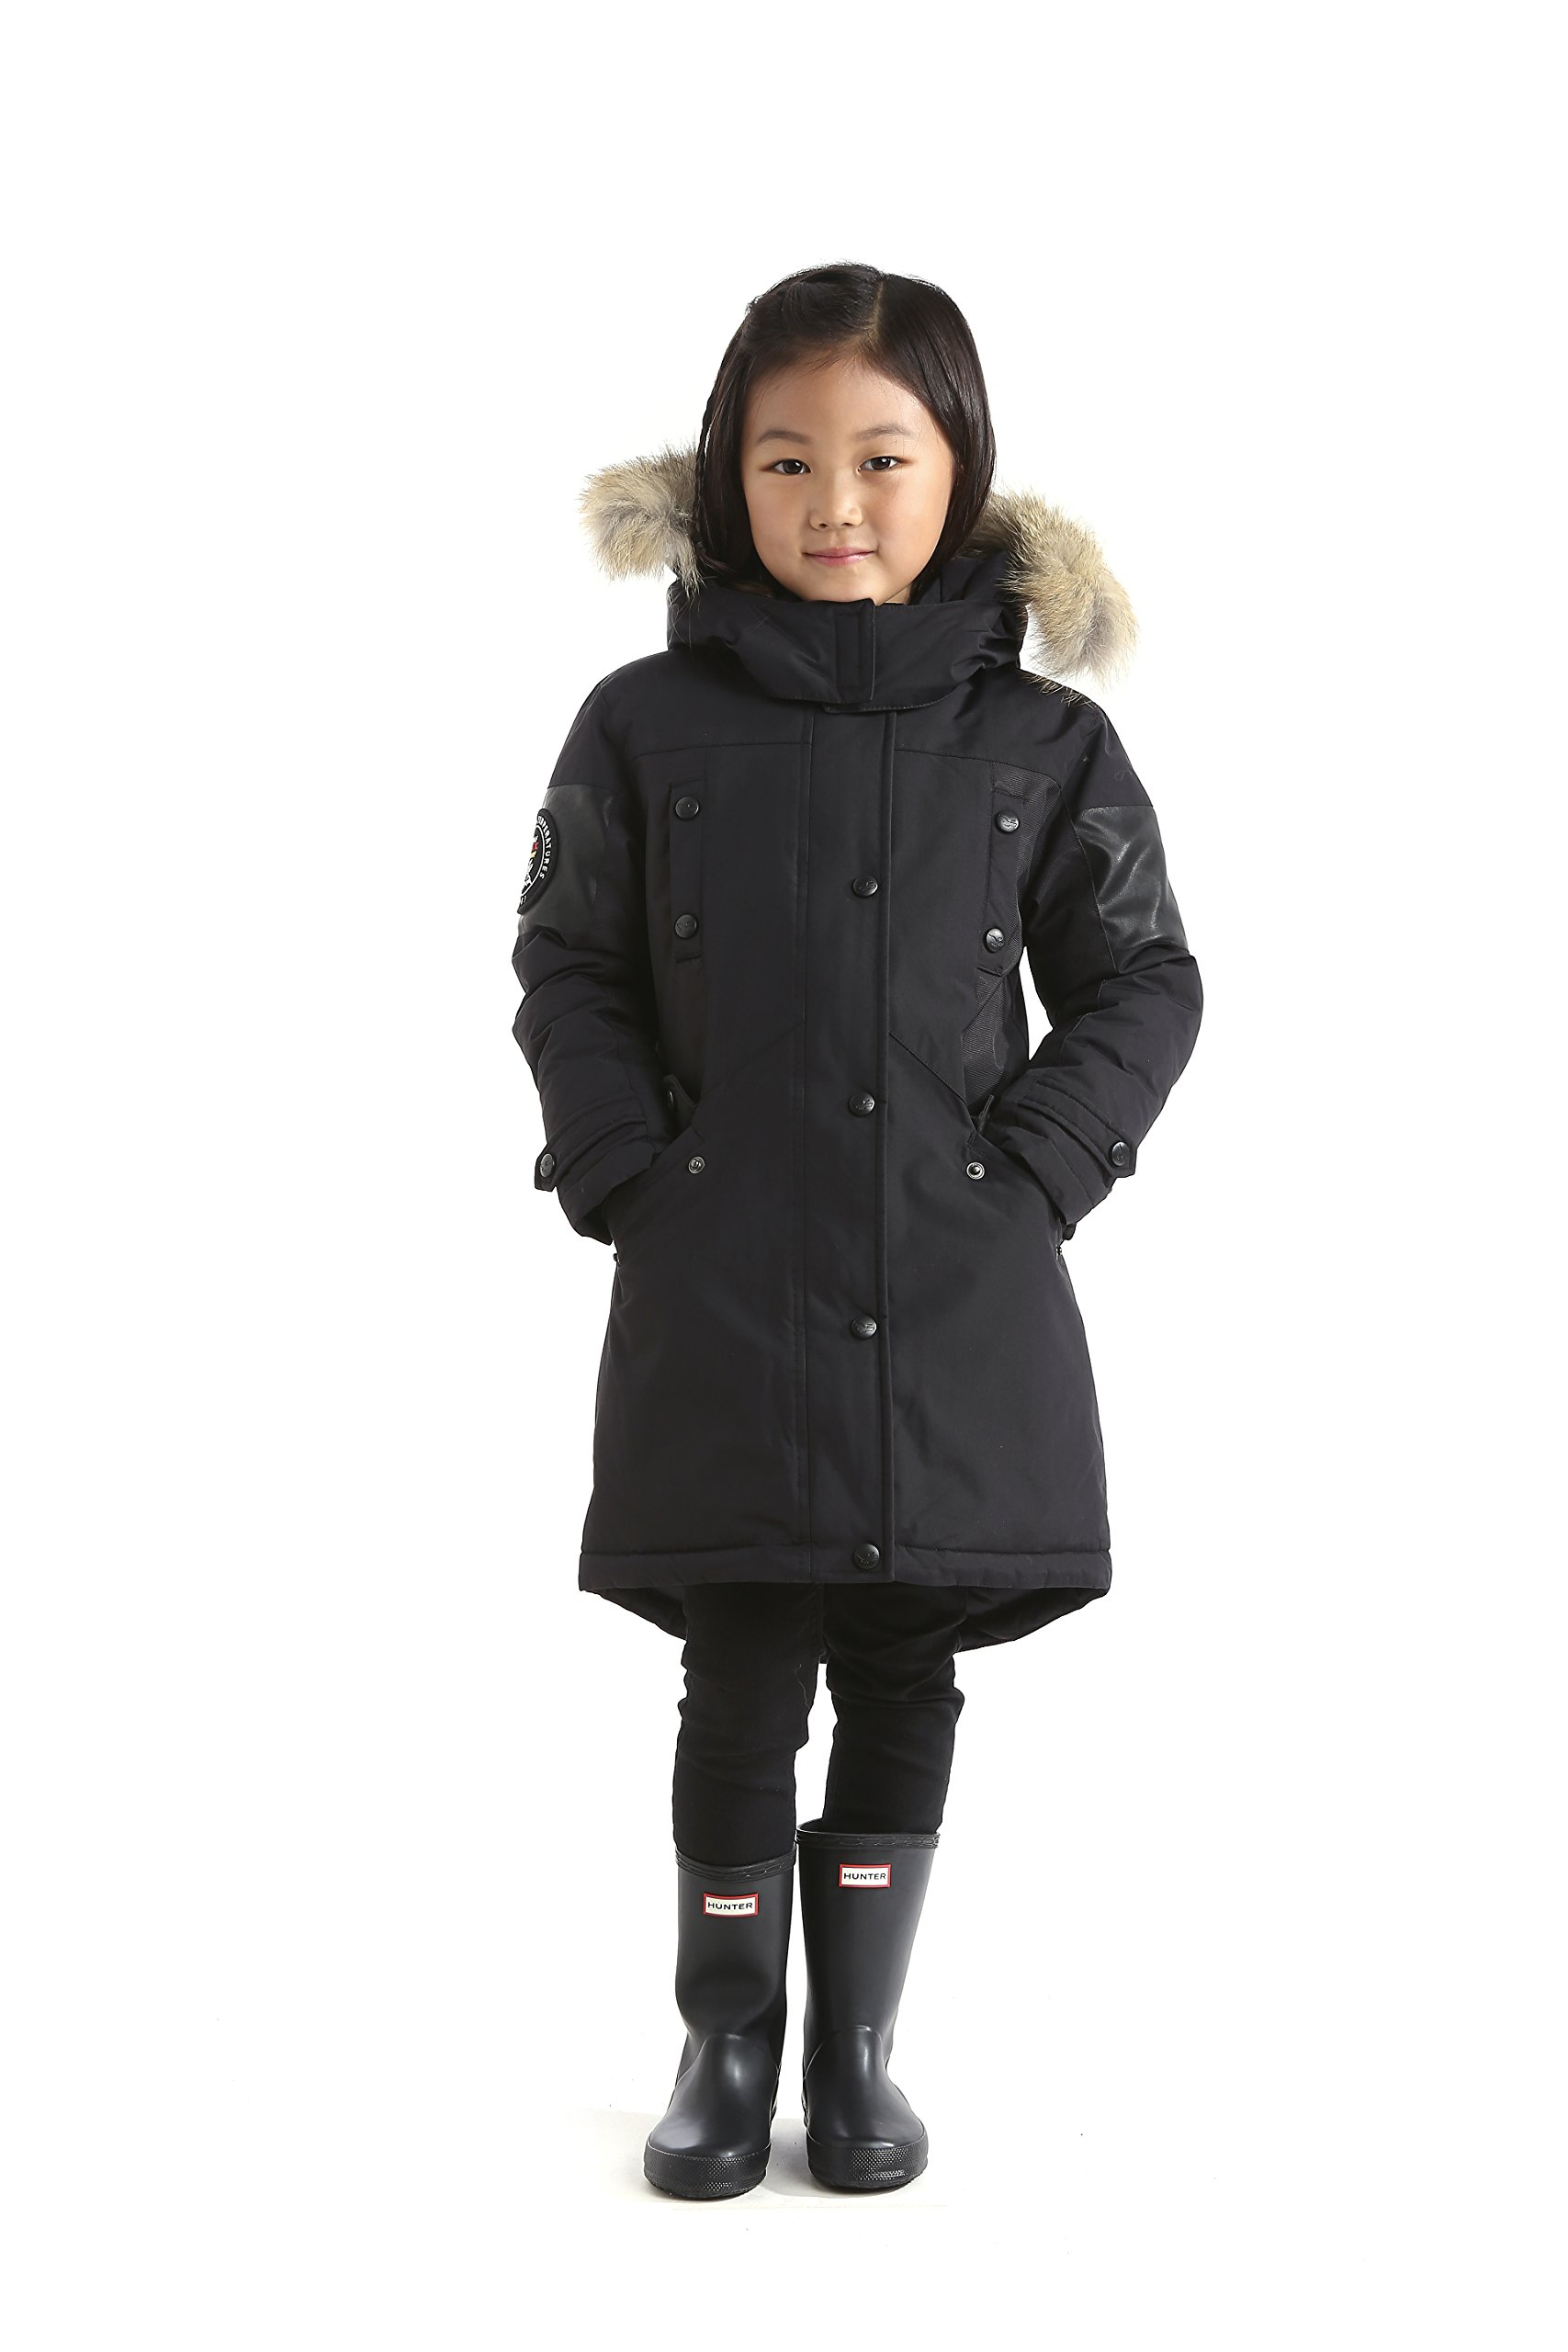 Triple F.A.T. Goose Embree Girls Down Jacket Parka with Real Coyote Fur (10, Black) by Triple F.A.T. Goose (Image #6)